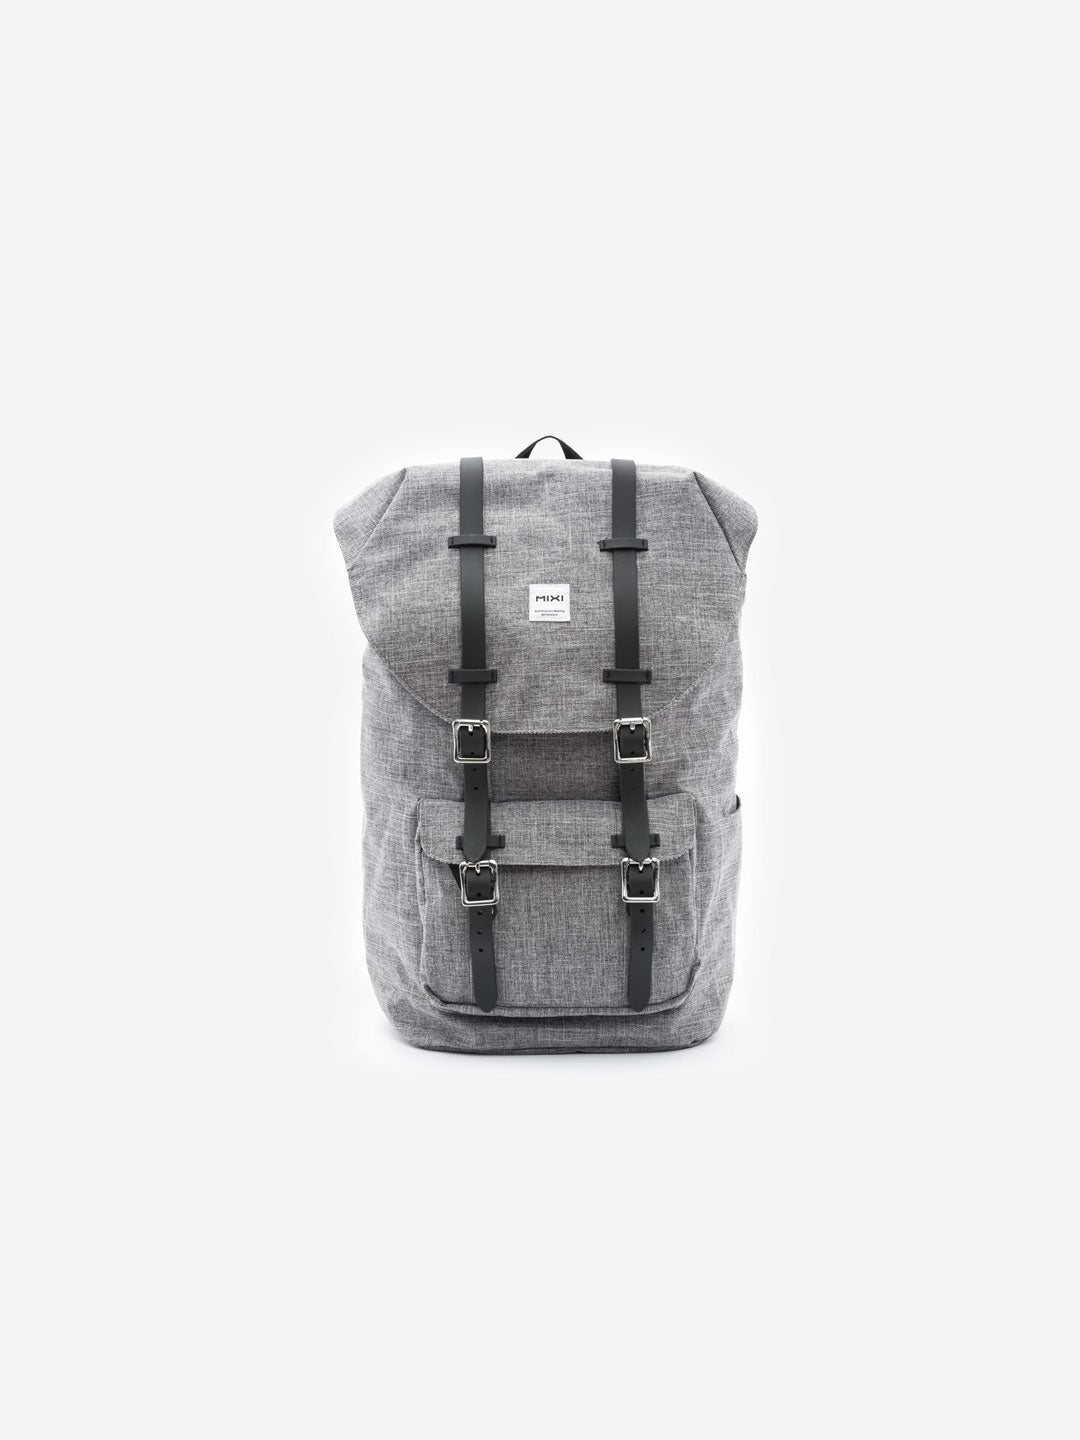 The Knapsack in Charcoal Grey